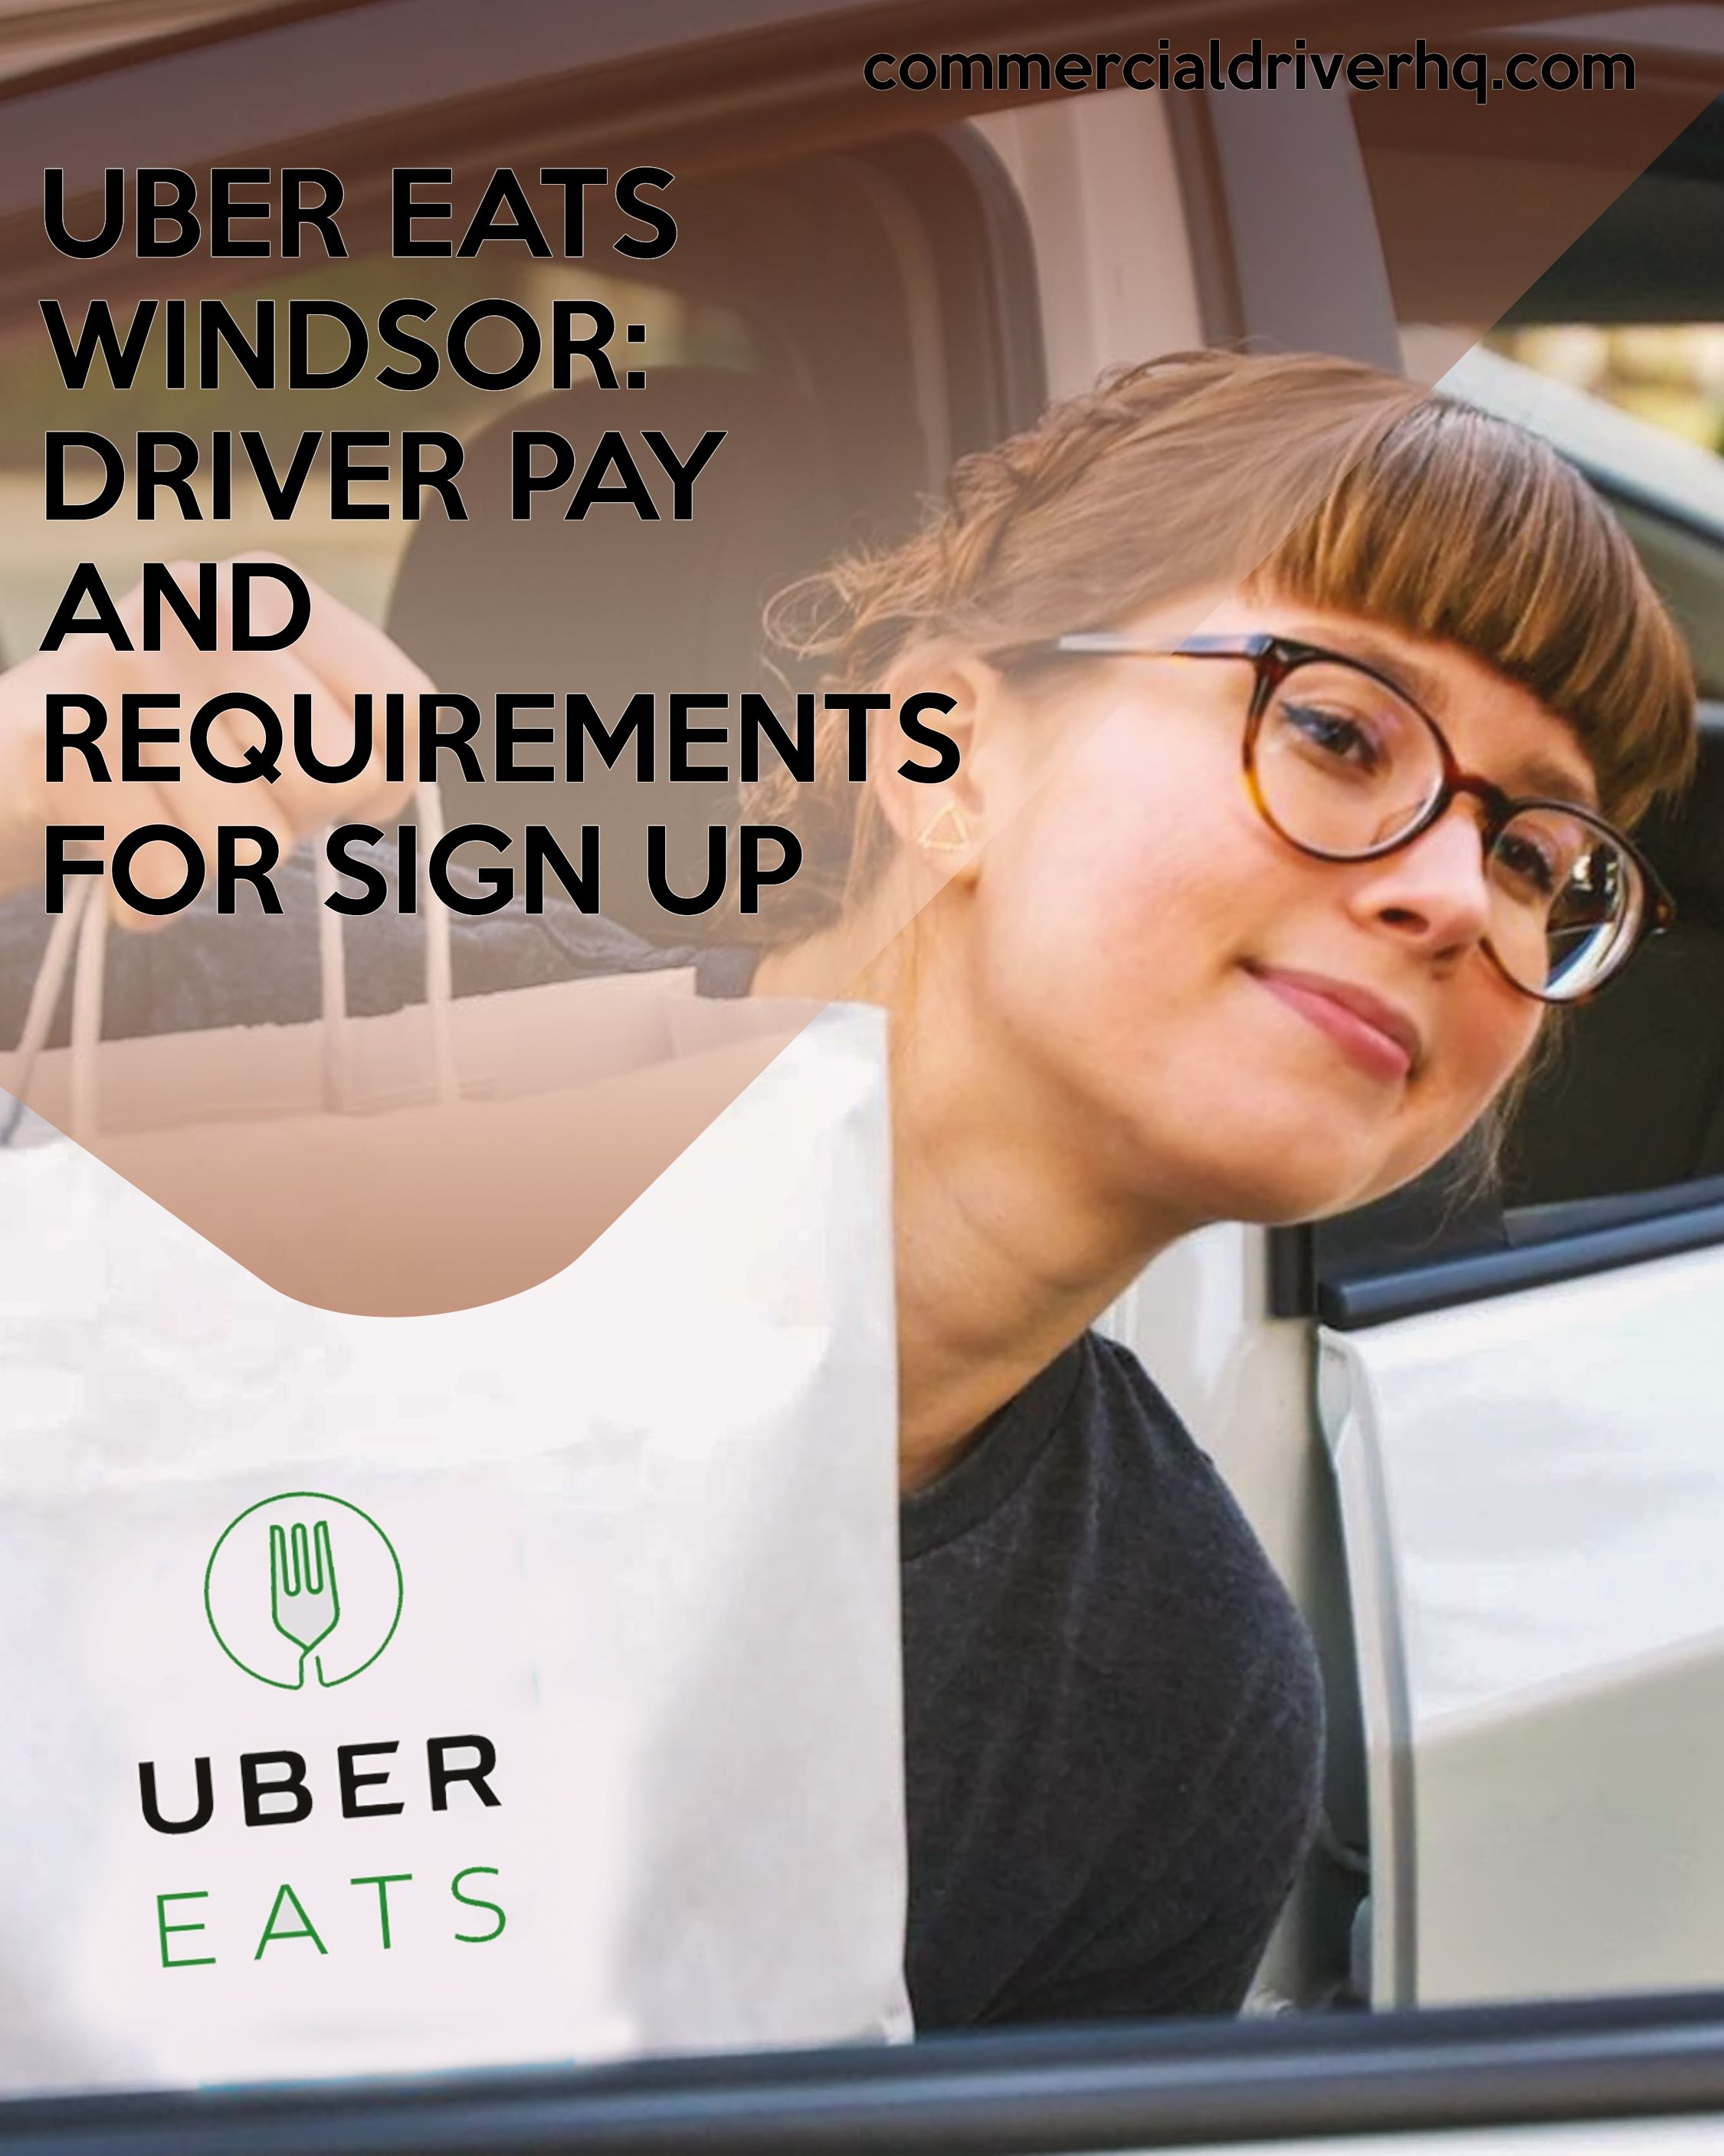 Uber Eats Windsor Driver Pay And Requirements For Sign Up